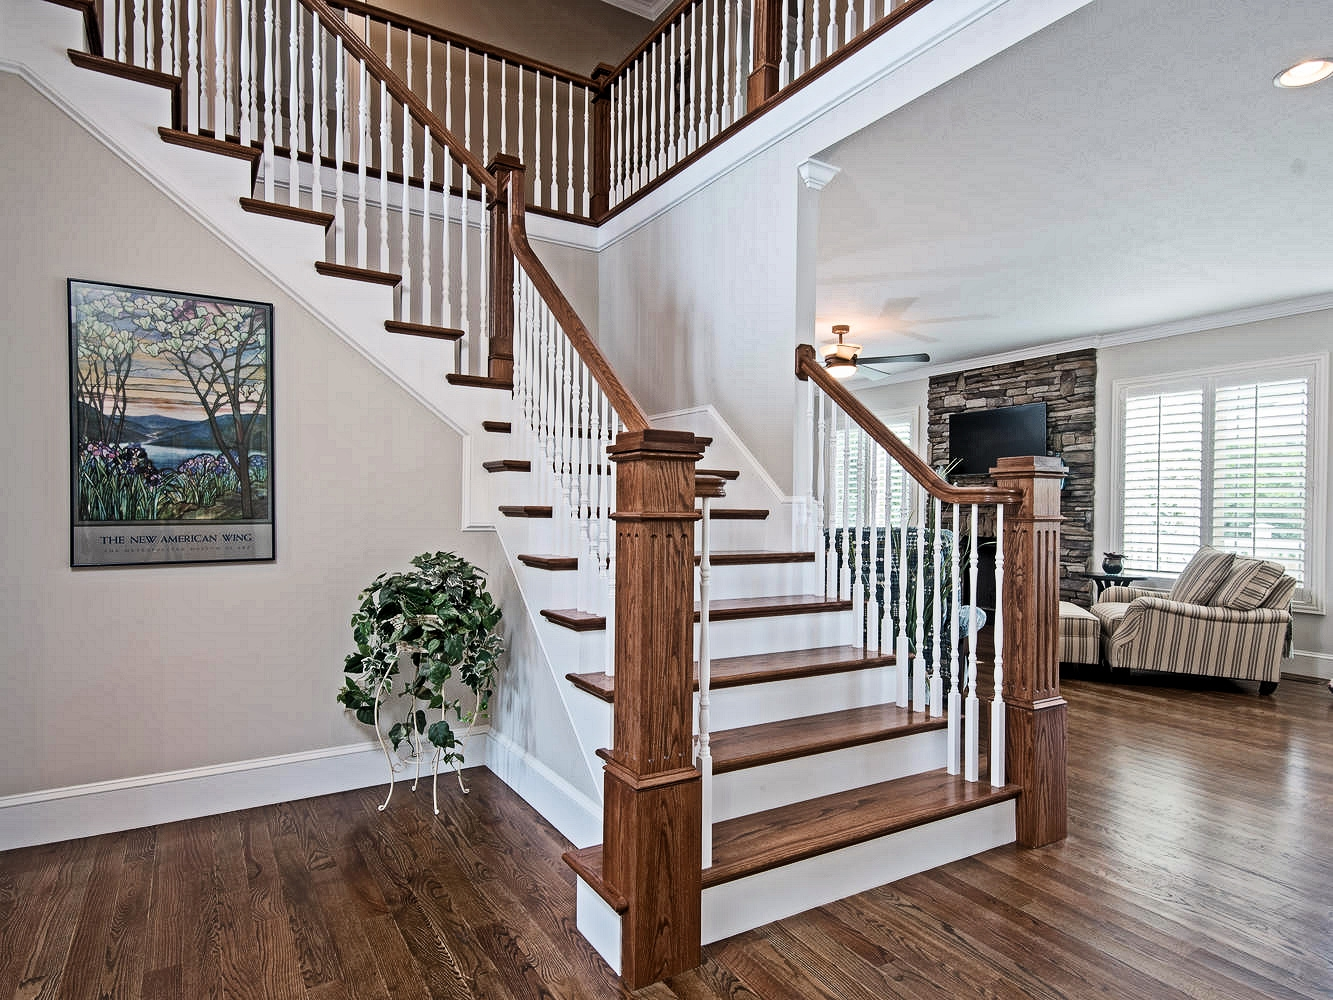 Box Newel Post Photo Gallery | Craftsman Style Newel Post | Design | Staircase | Railing | Square | Interior